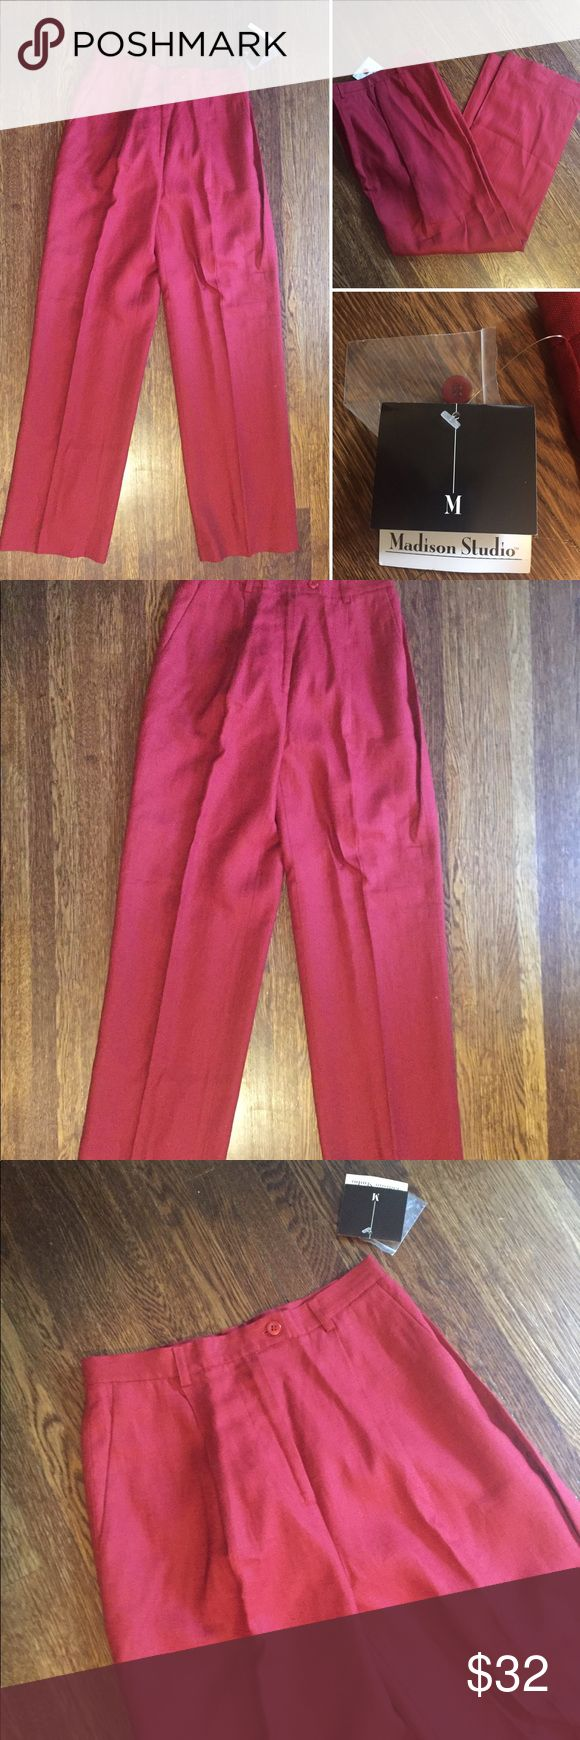 🆕 Madison Studio Dark Red Linen Lined Pants 6 New with tags Madison Studio Lined linen Pants with pockets in a size ladies 6. Pants come in a deep red, brick color and have been kept smoke free. MEASUREMENTS: waist from hem to hem lying flat - 14 inches flat. The length is 42.5 inches. RETAIL: $69 Madison Studio Pants Trousers